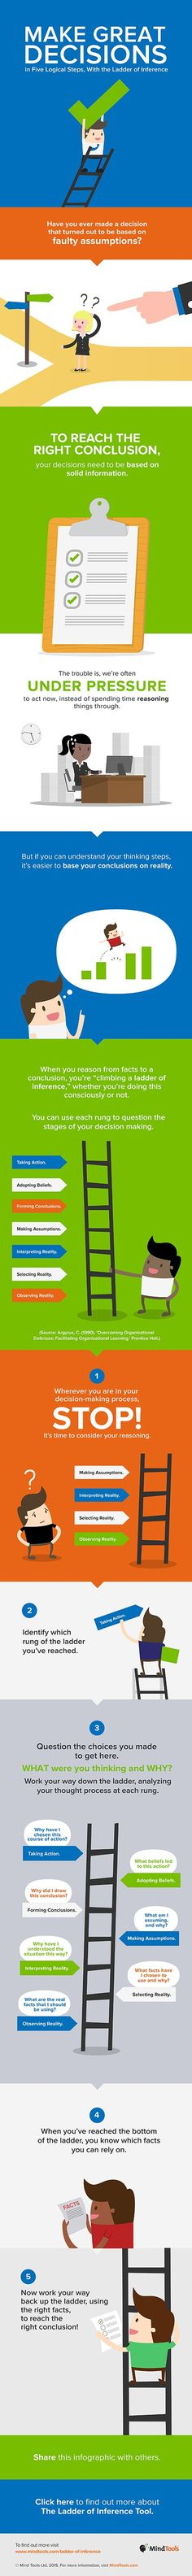 11 Resume Writing Tips That Will Get You Hired Fast Infographic - the ladders resume